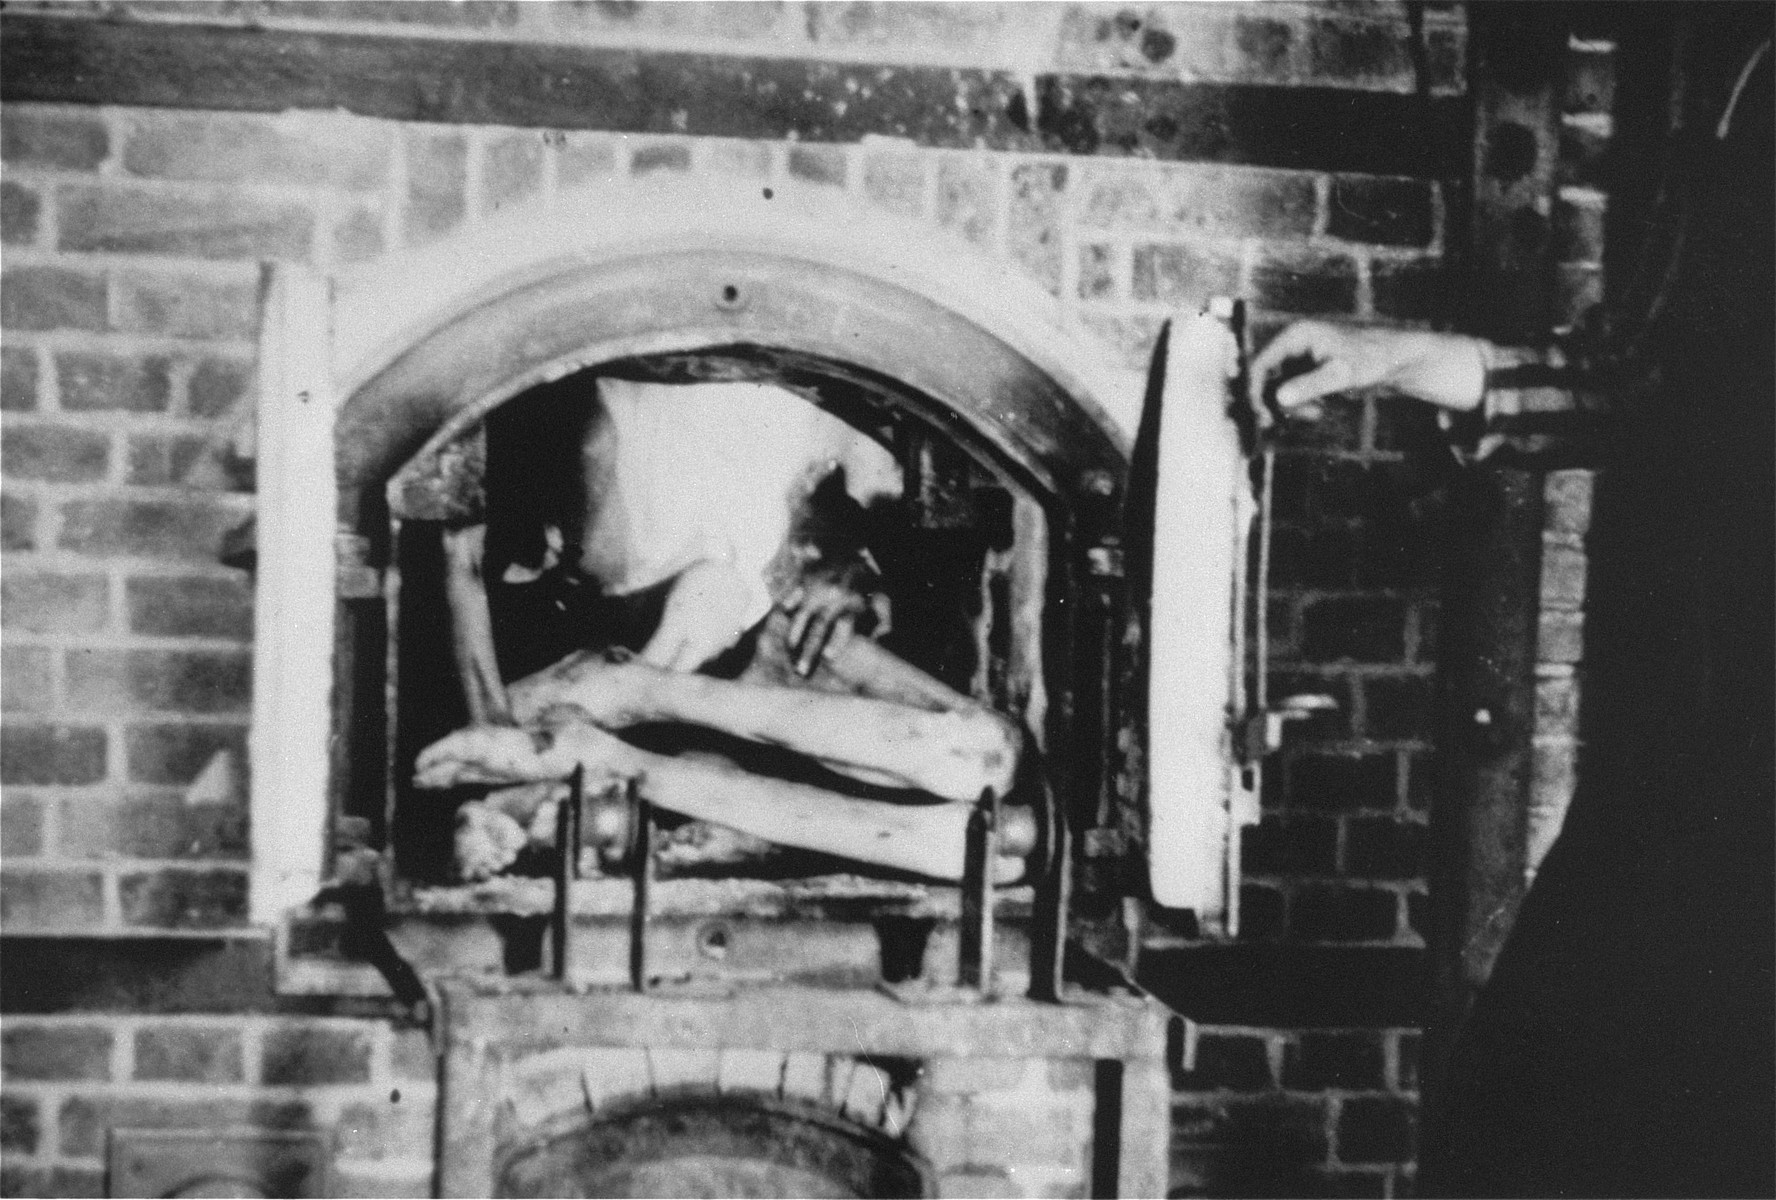 A corpse in a crematorium oven.  This photo was taken by William Landgren who arrived with his unit 30 minutes after the liberation of the camp.  The next day his unit was ordered back to help police the camp.